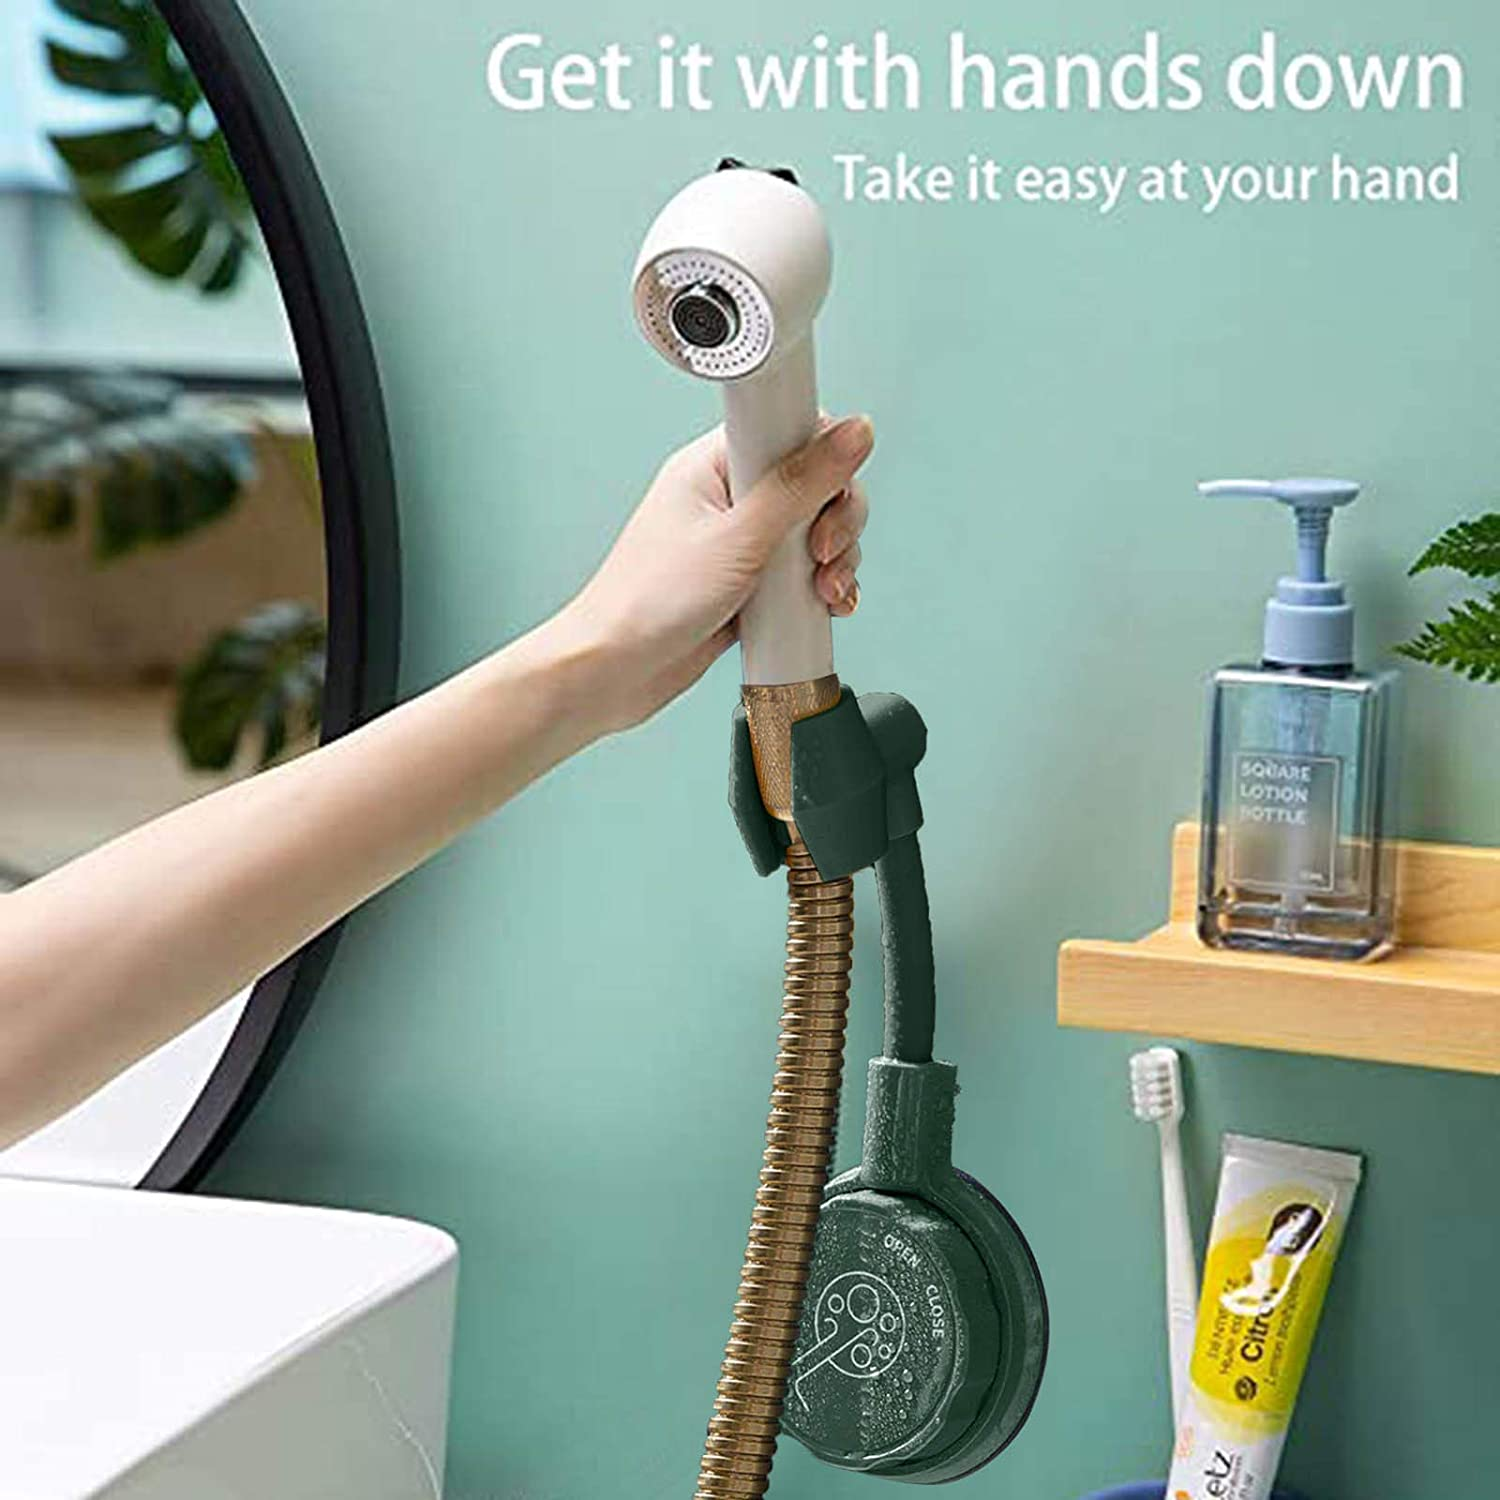 Green+Yellow// 2PCS Shower Head Holder Flexible Wall Mounted Showerhead Holders Universal 360/° Adjustable Rotatable Shower Bracket No-Punching Strong Adhesive Shower Rack for Bathroom